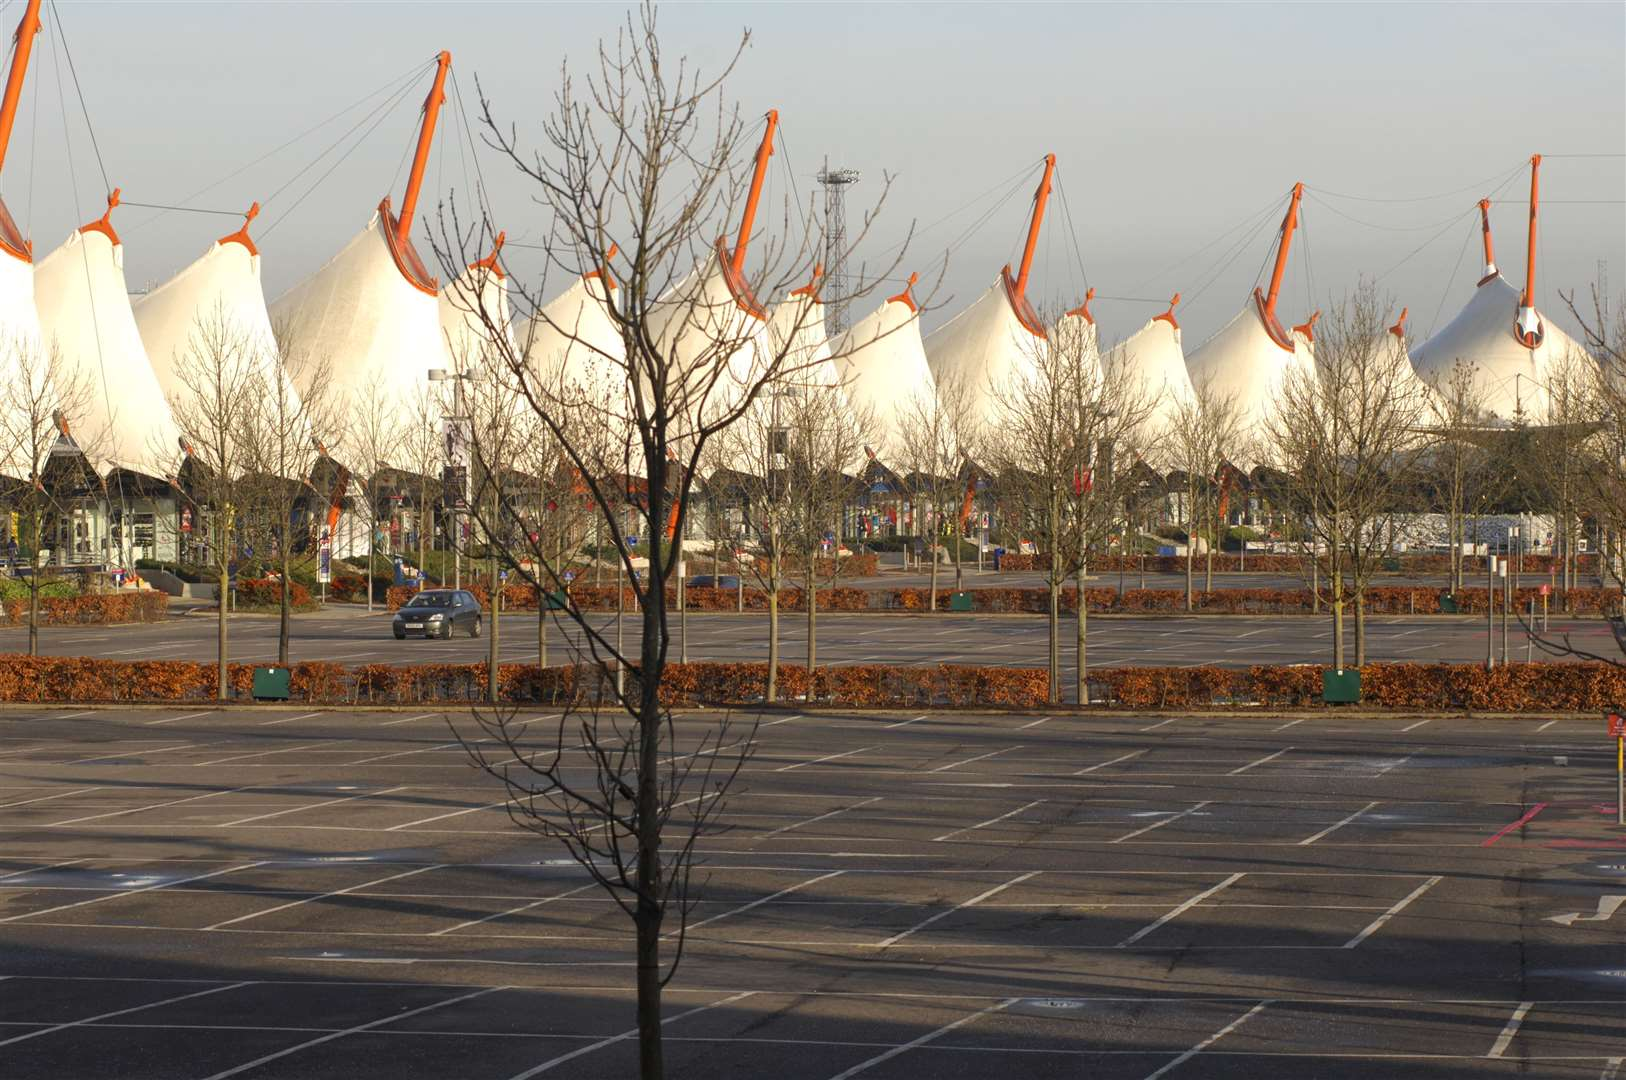 The Ashford Designer Outlet in 2010. Picture: Martin Apps